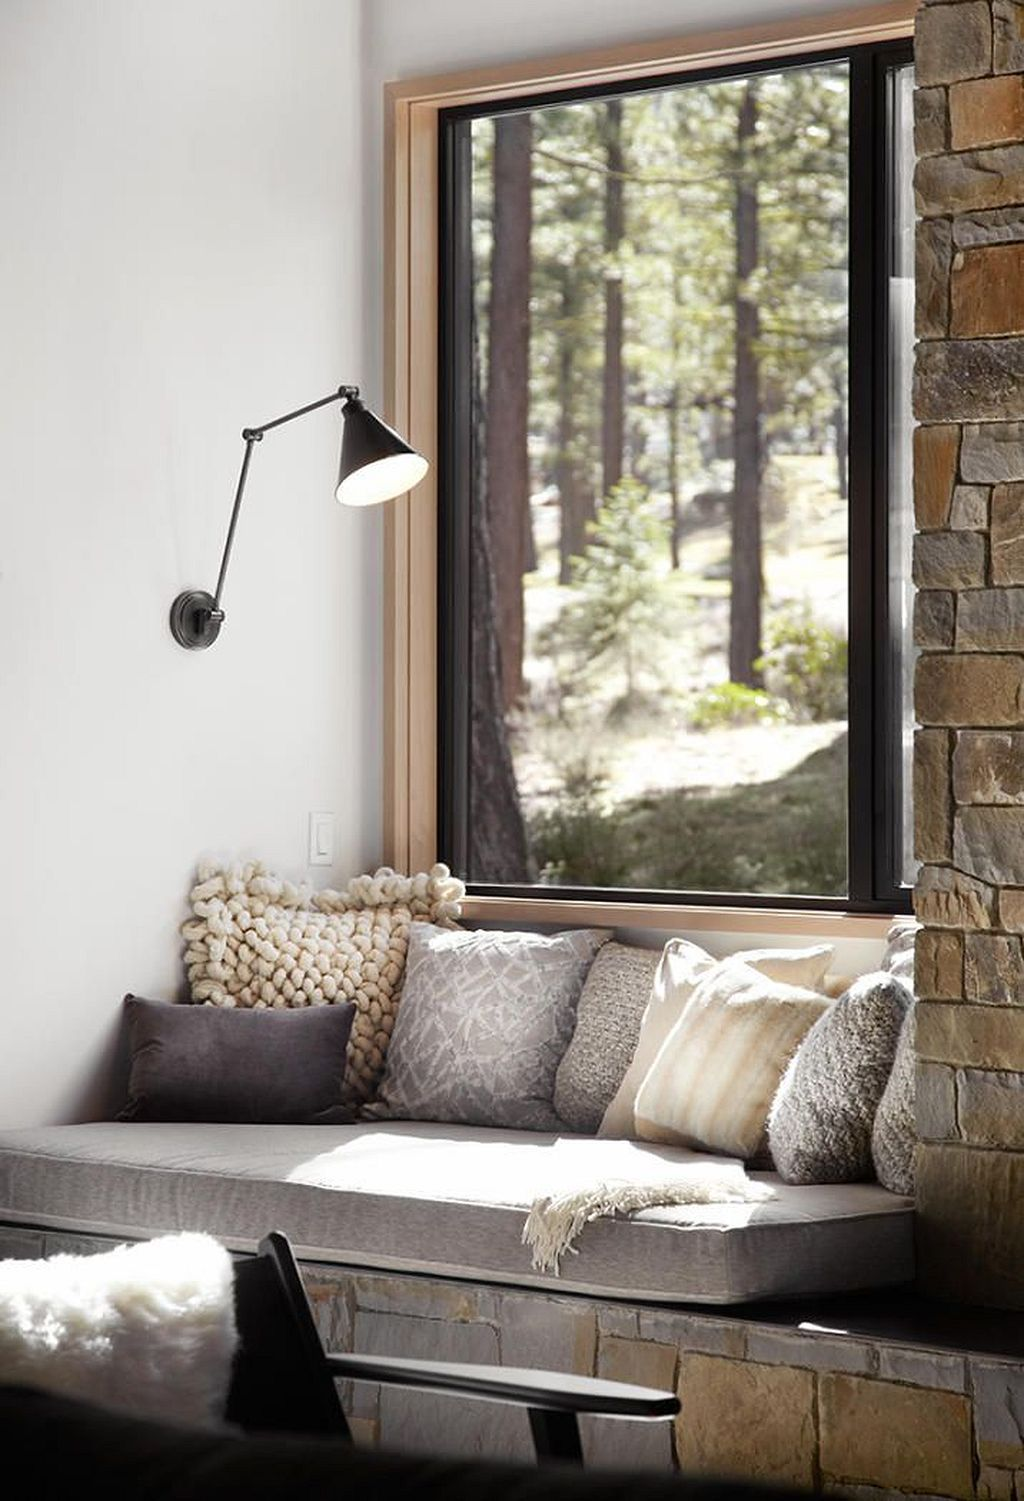 Window seat with bed   cozy nook bed window seat inspiration  nooks inspiration and